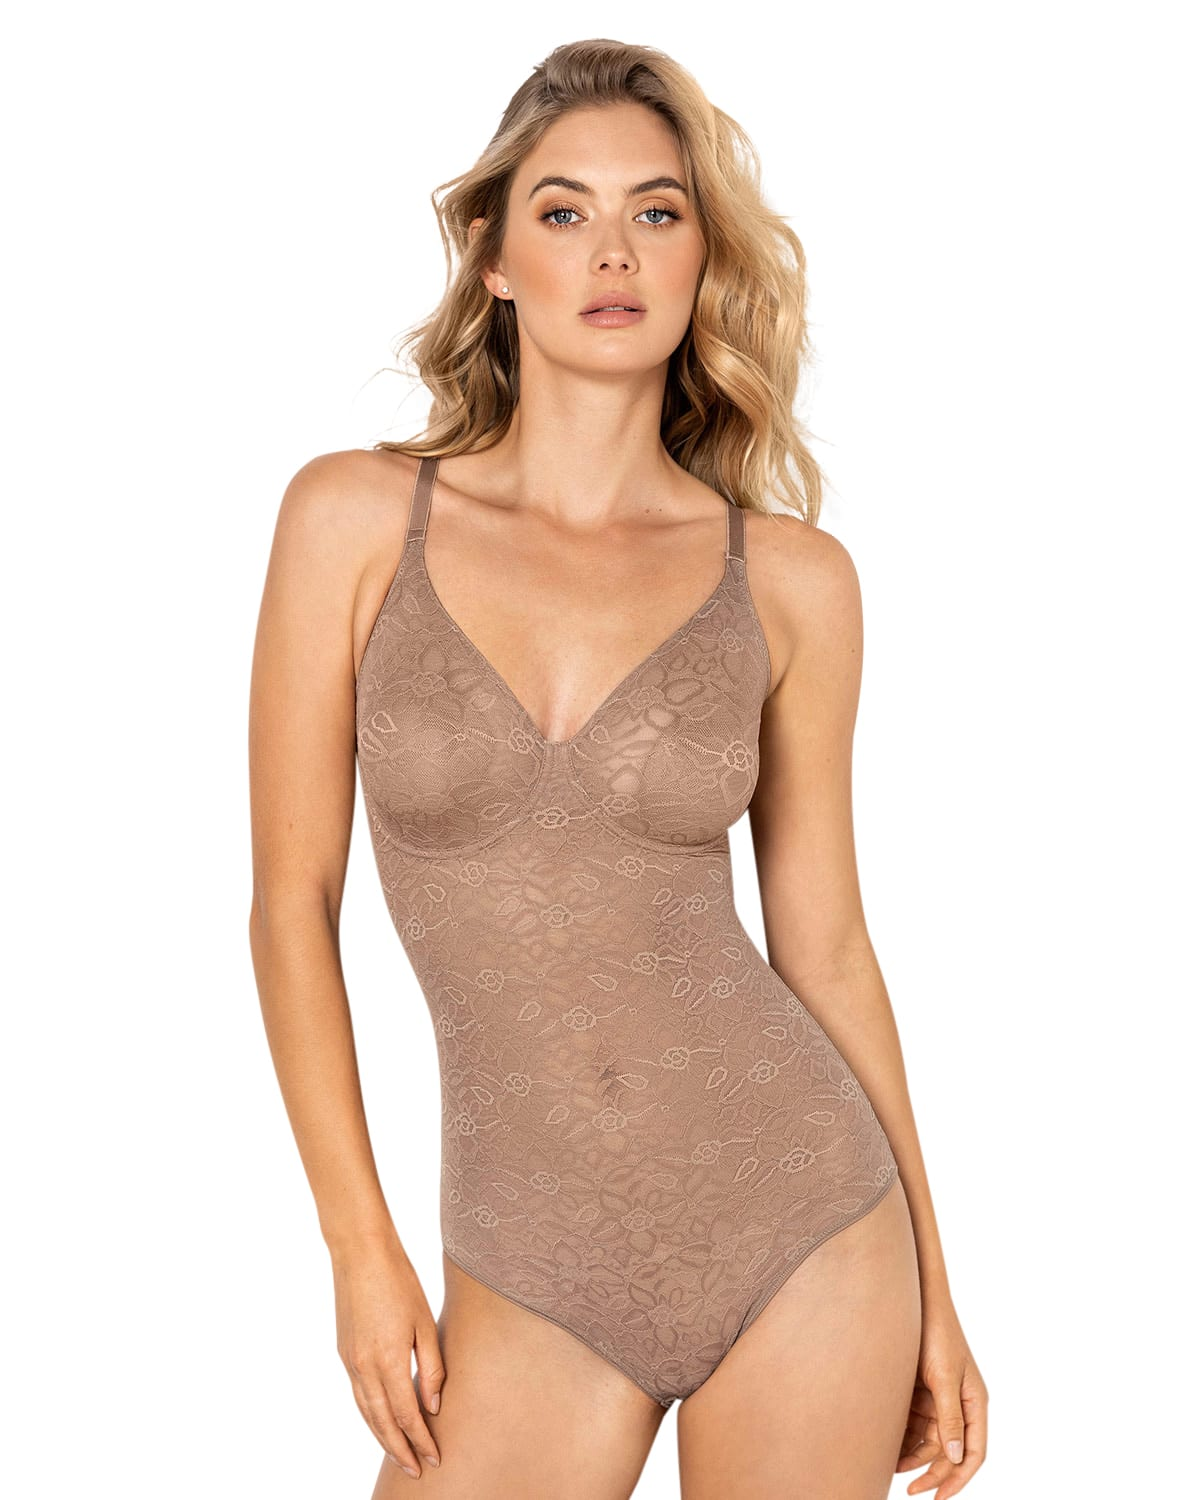 Underwire Smoothing Lace Bodysuit